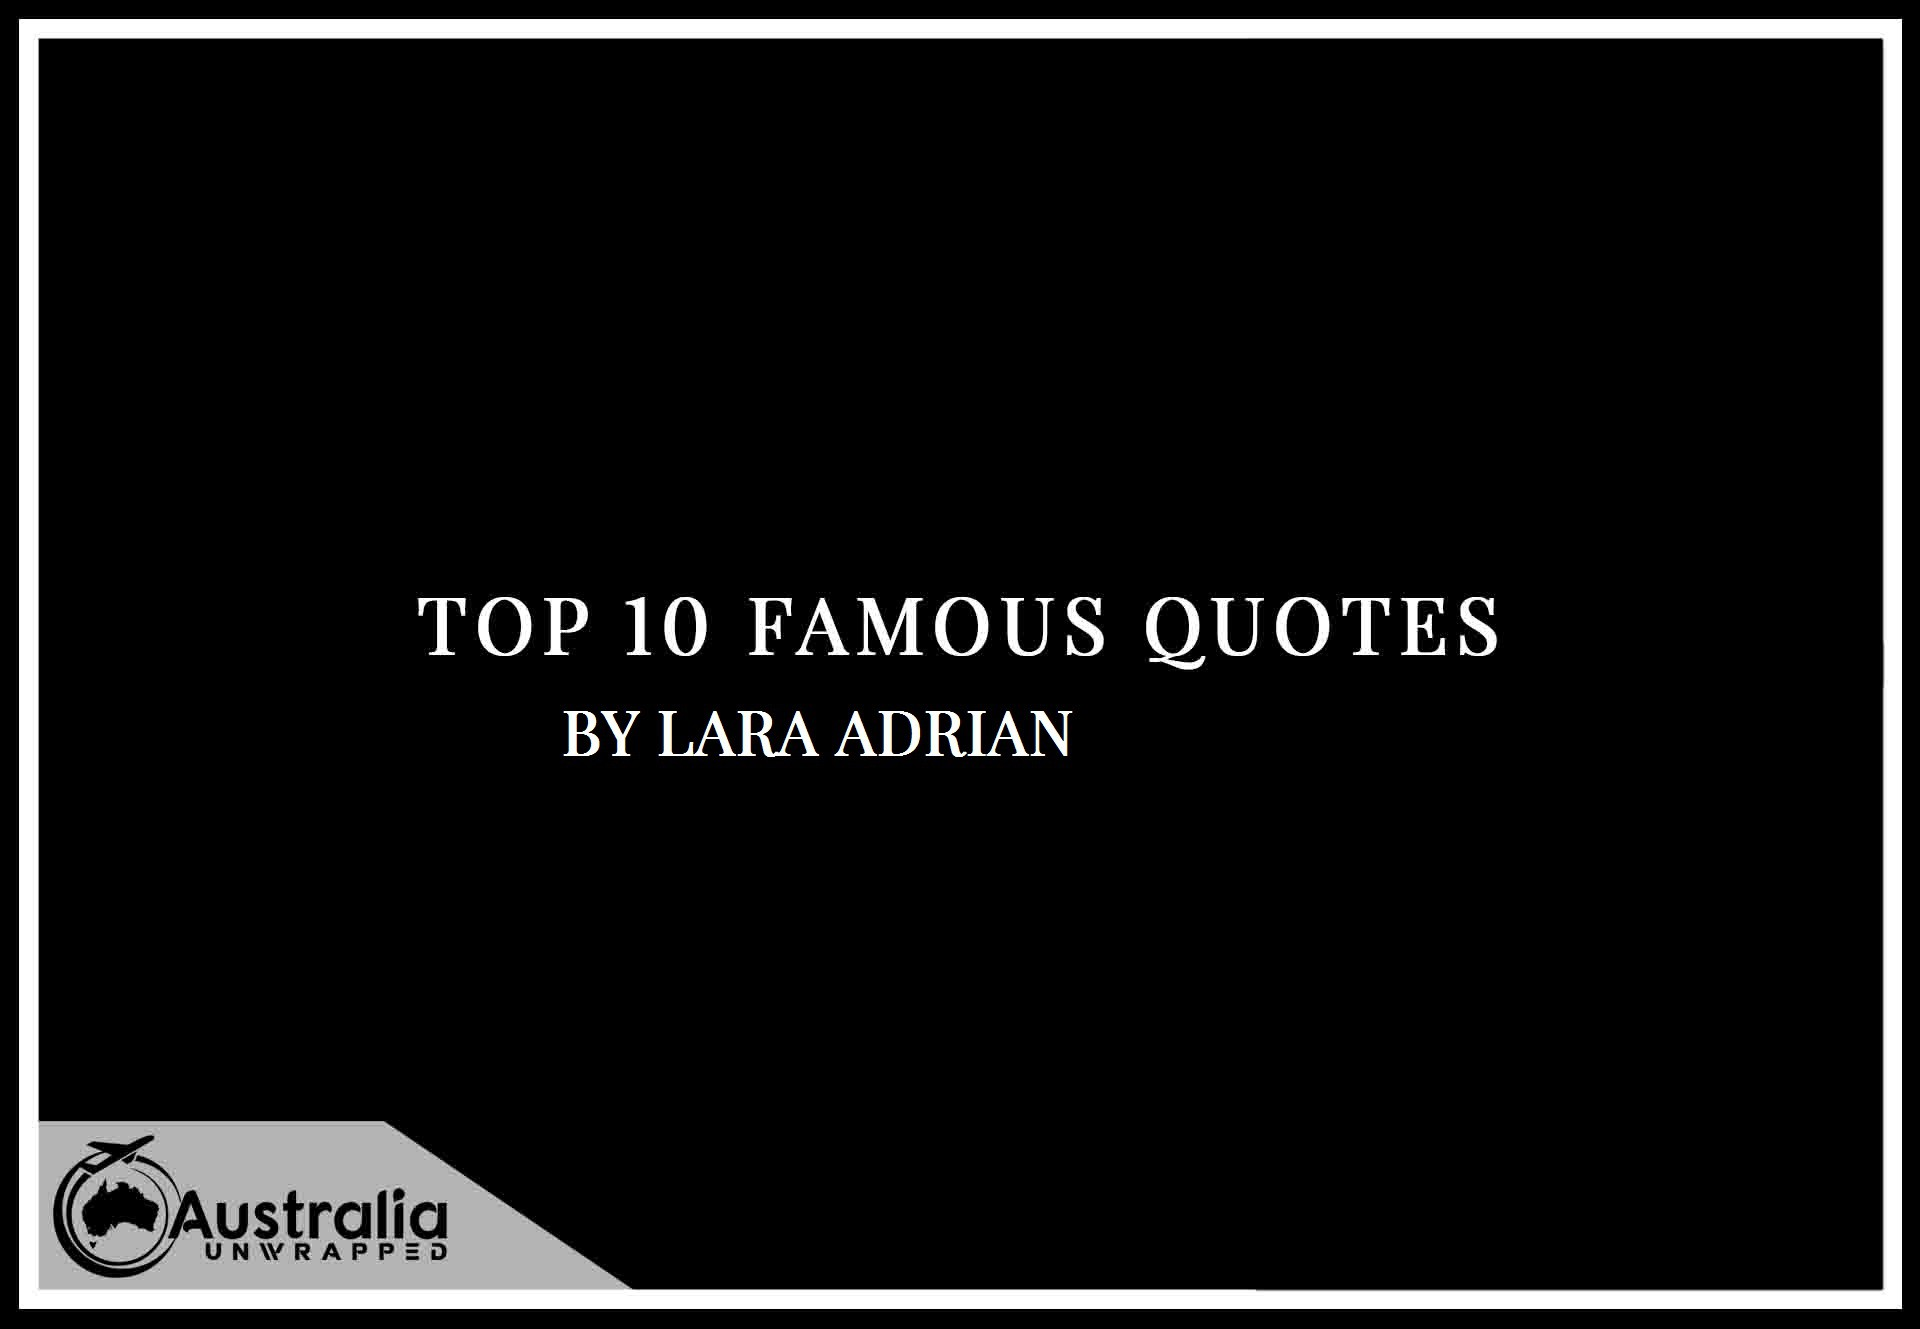 Lara Adrian's Top 10 Popular and Famous Quotes